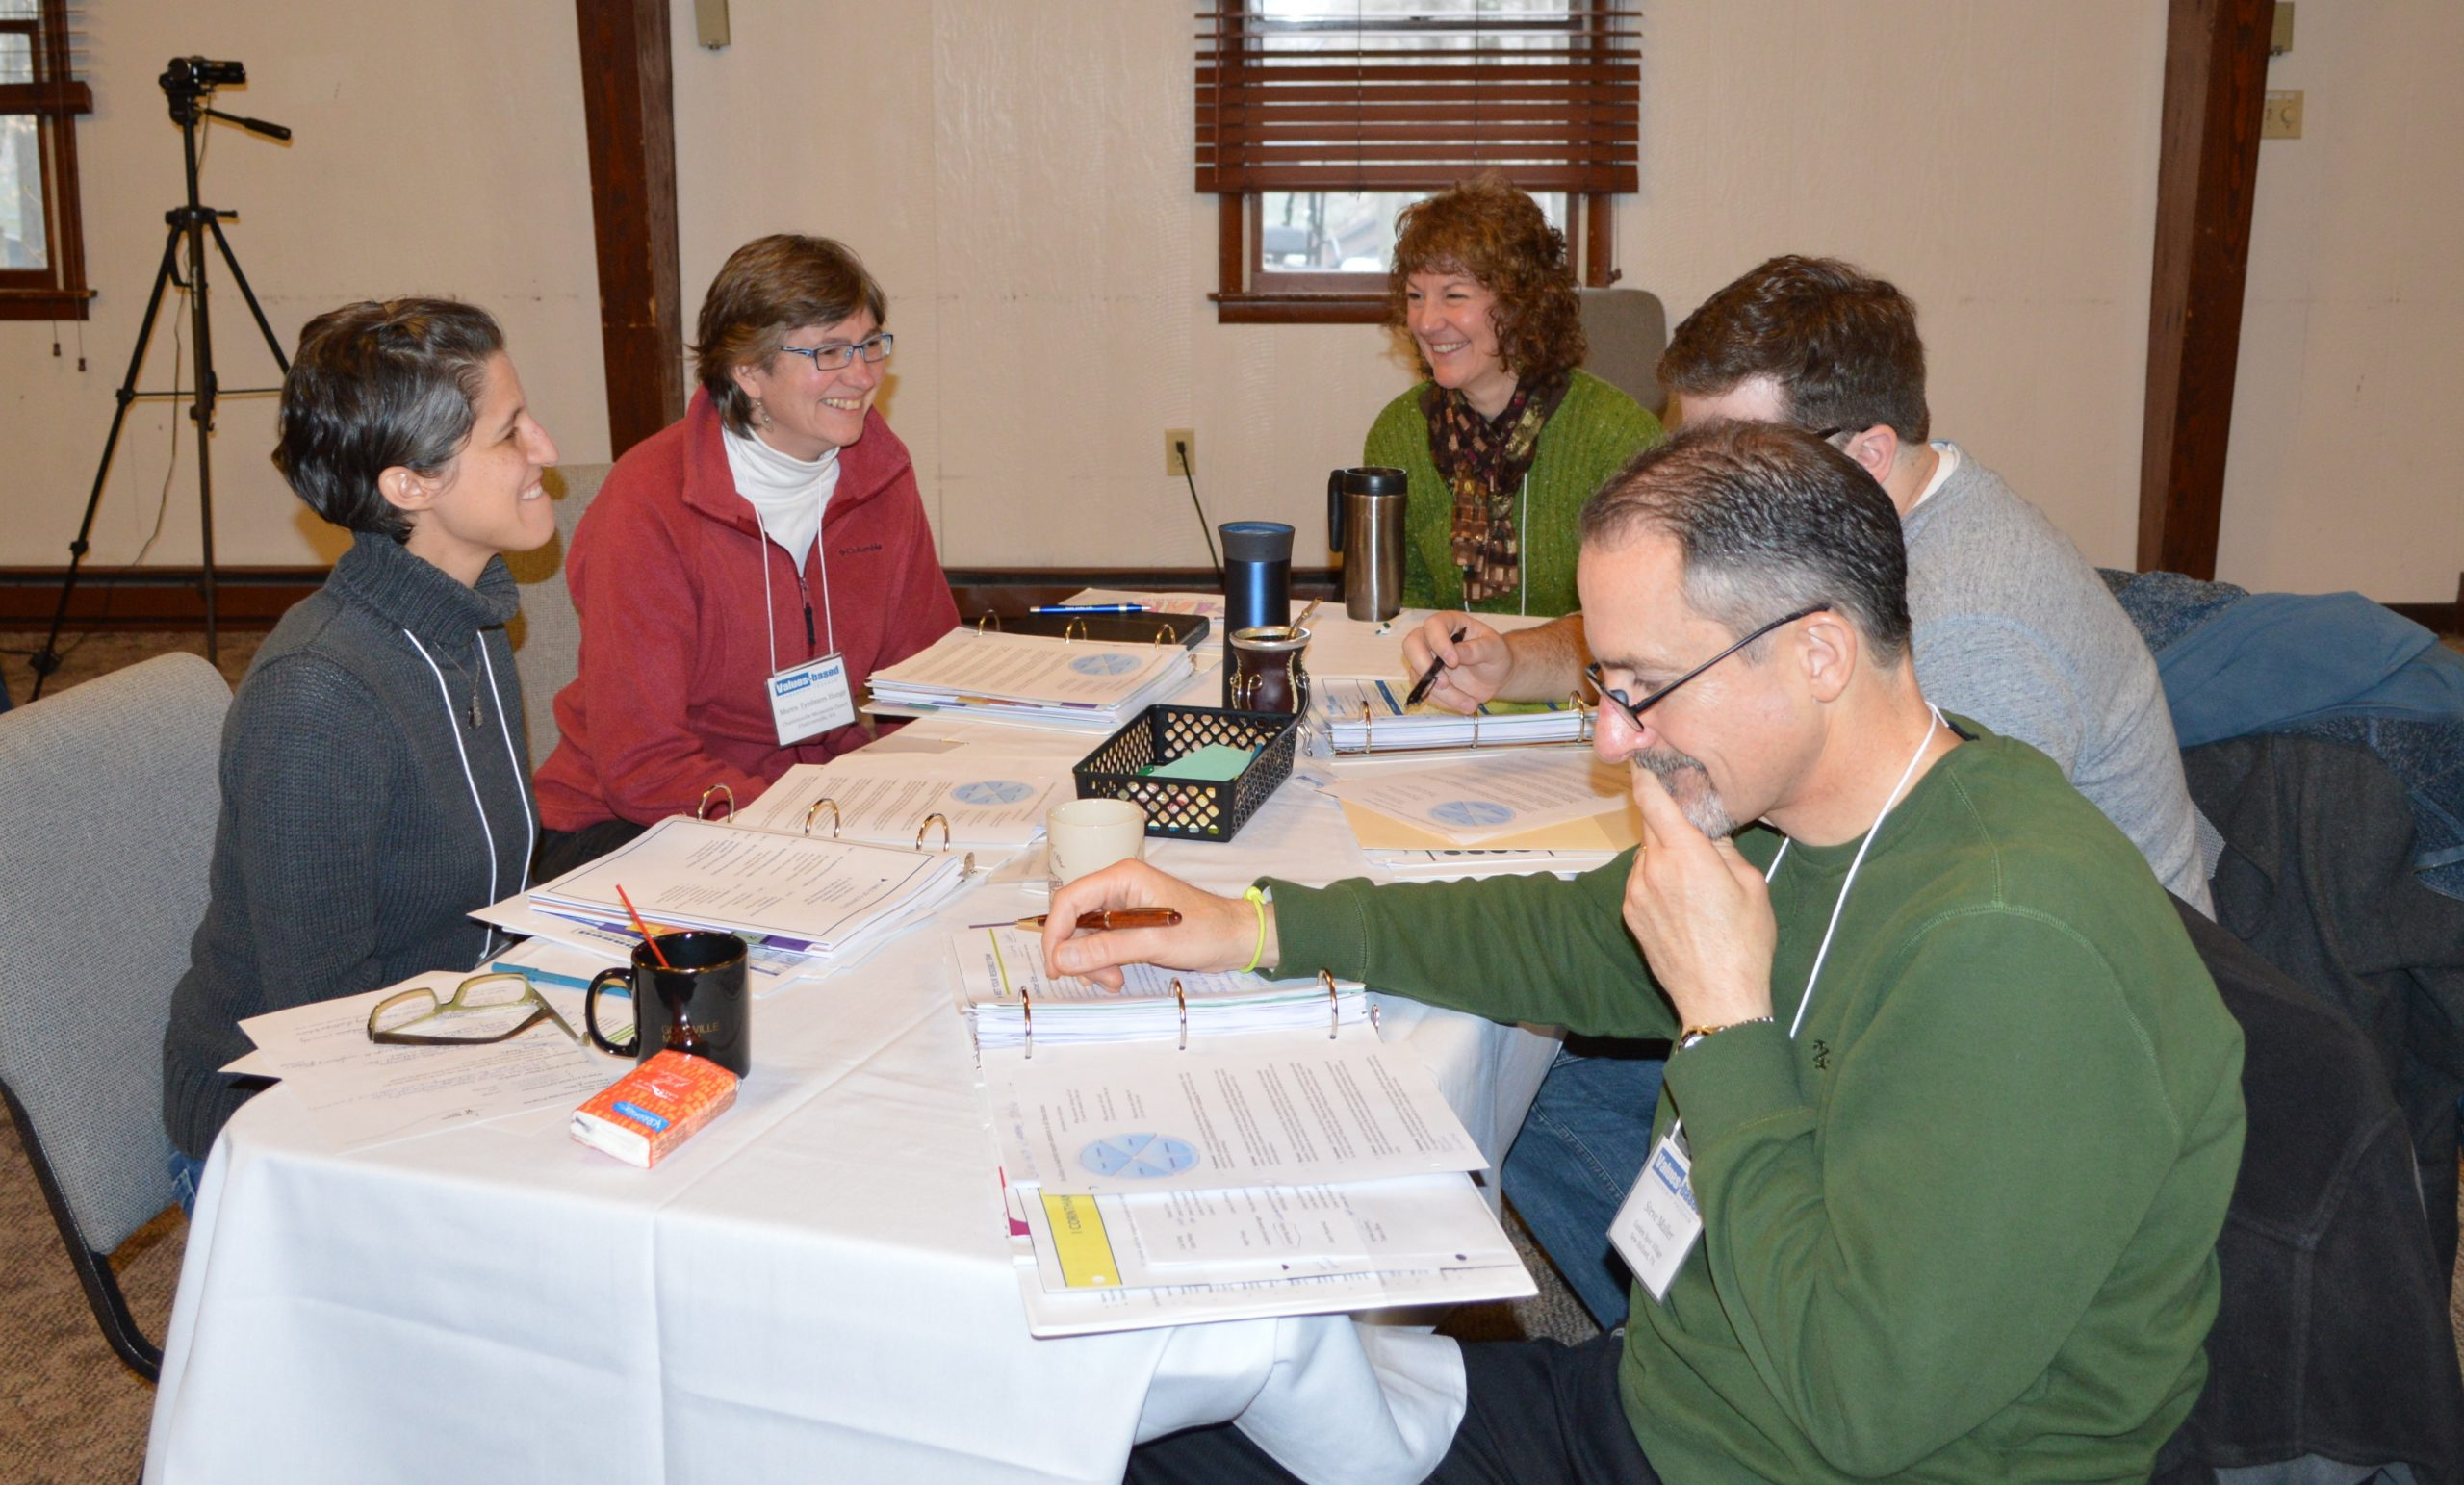 Participants in the Values-based Leadership Program discuss a presentation given during their February meeting. (Laurelville Mennonite Church Center photo)